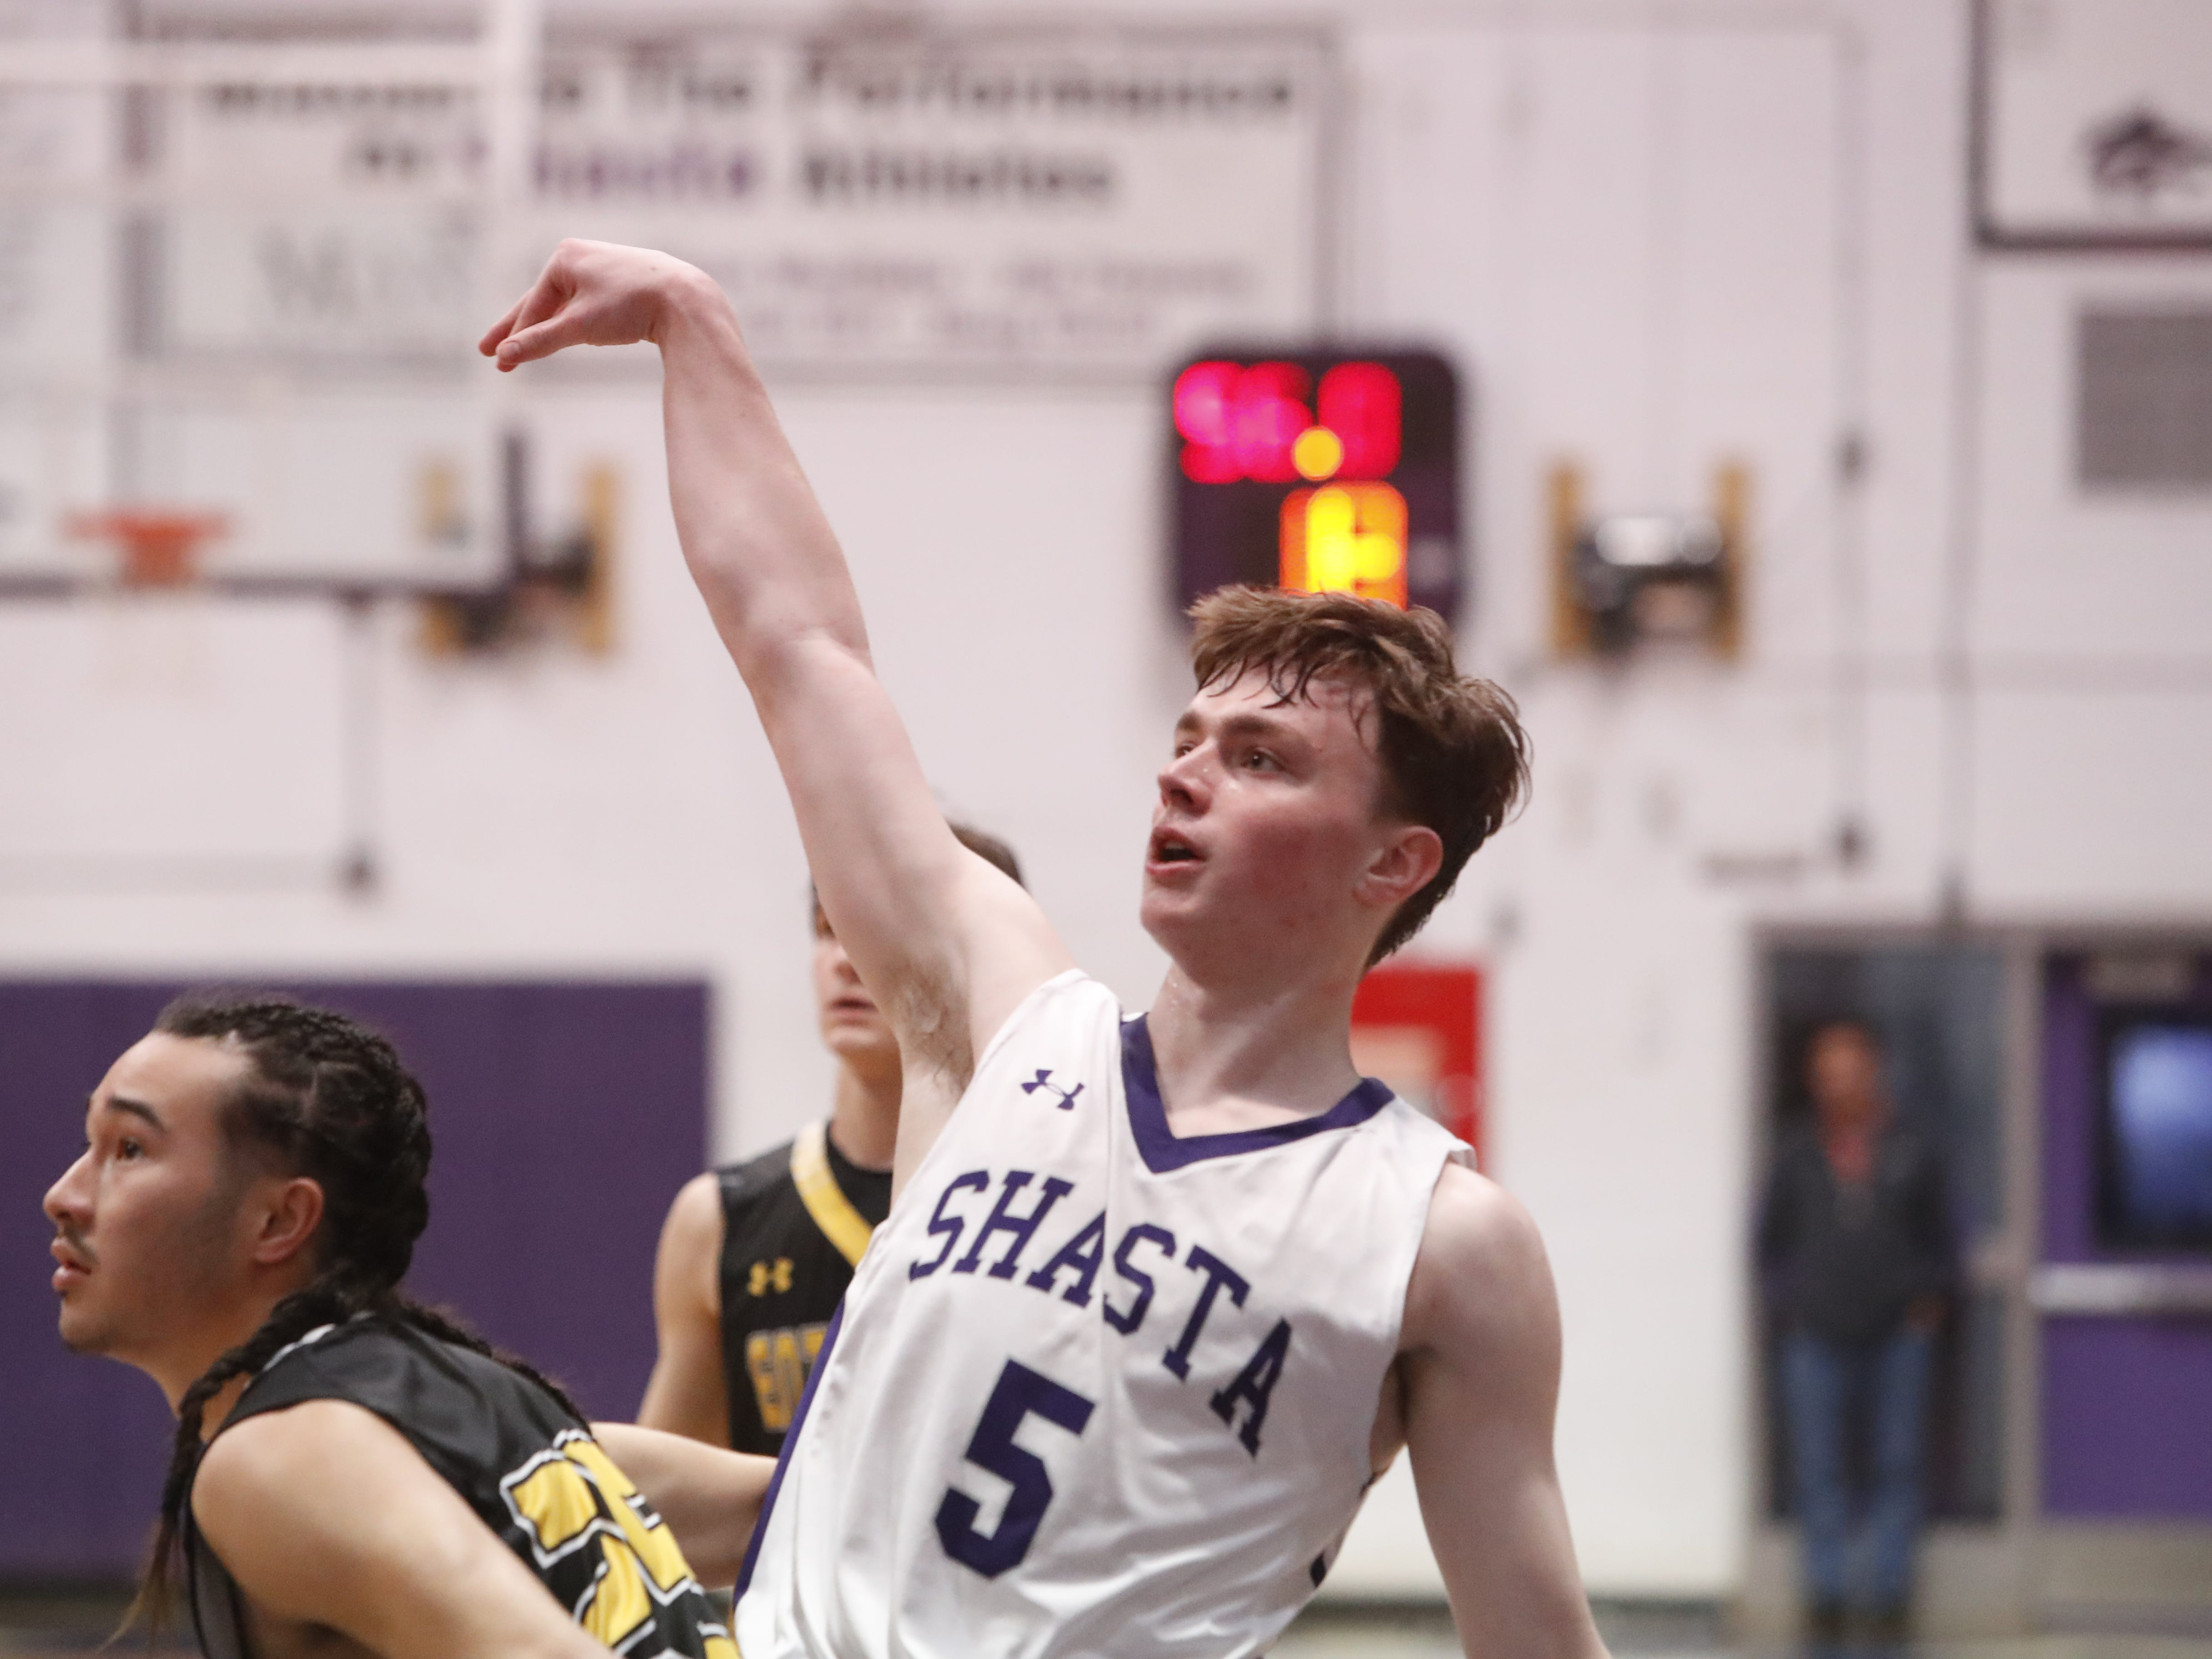 Shasta guard Caden Cushman follows through on a jump shot during the Wolves' 75-58 win over Enterprise on Tuesday, Feb. 5, 2019.